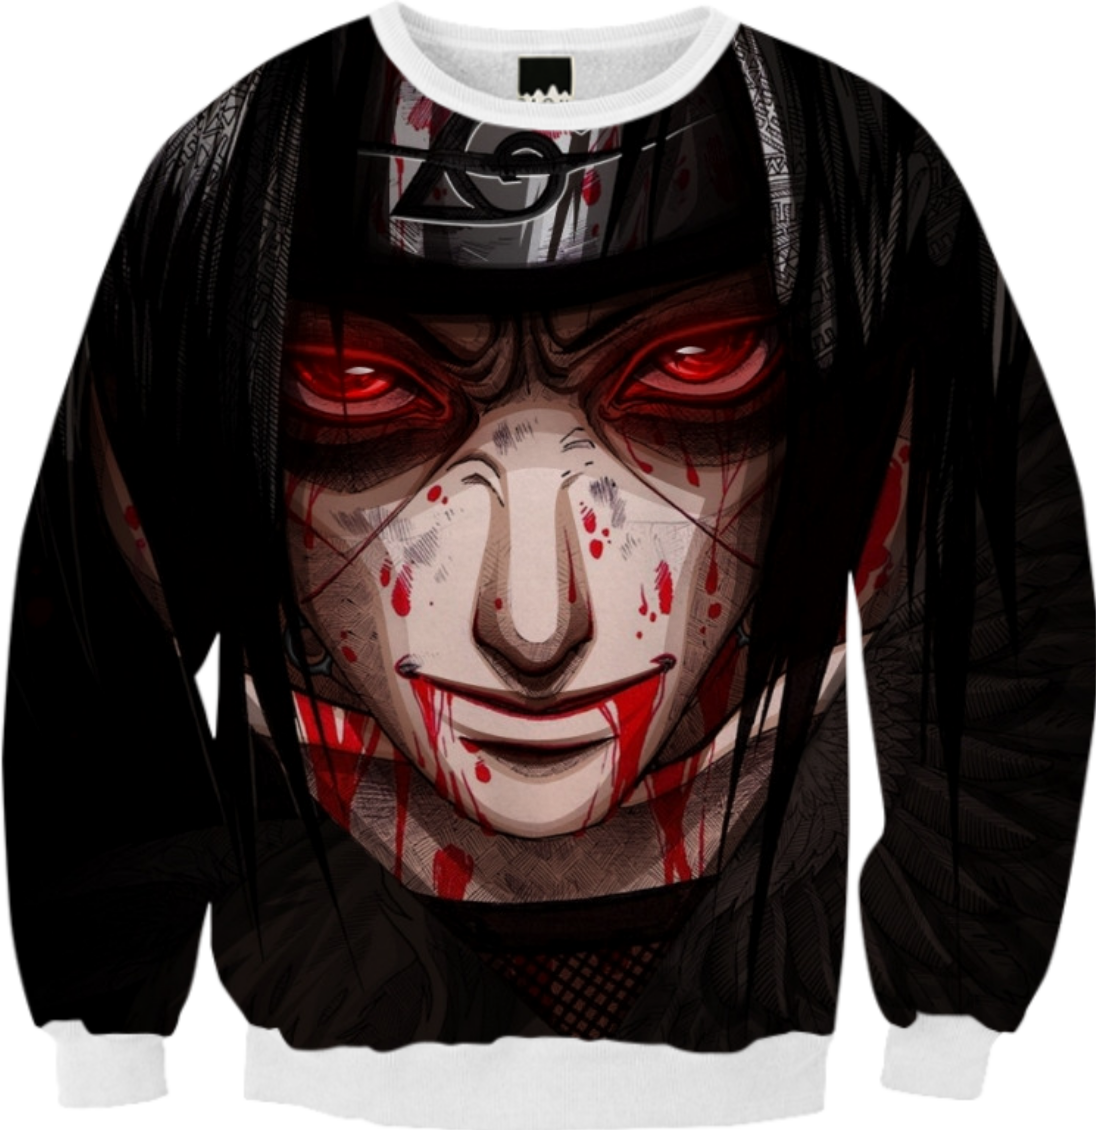 Uchiha Sweater: Shop Uchiha Itachi Sweater Ribbed Sweatshirt By Xkiritosao